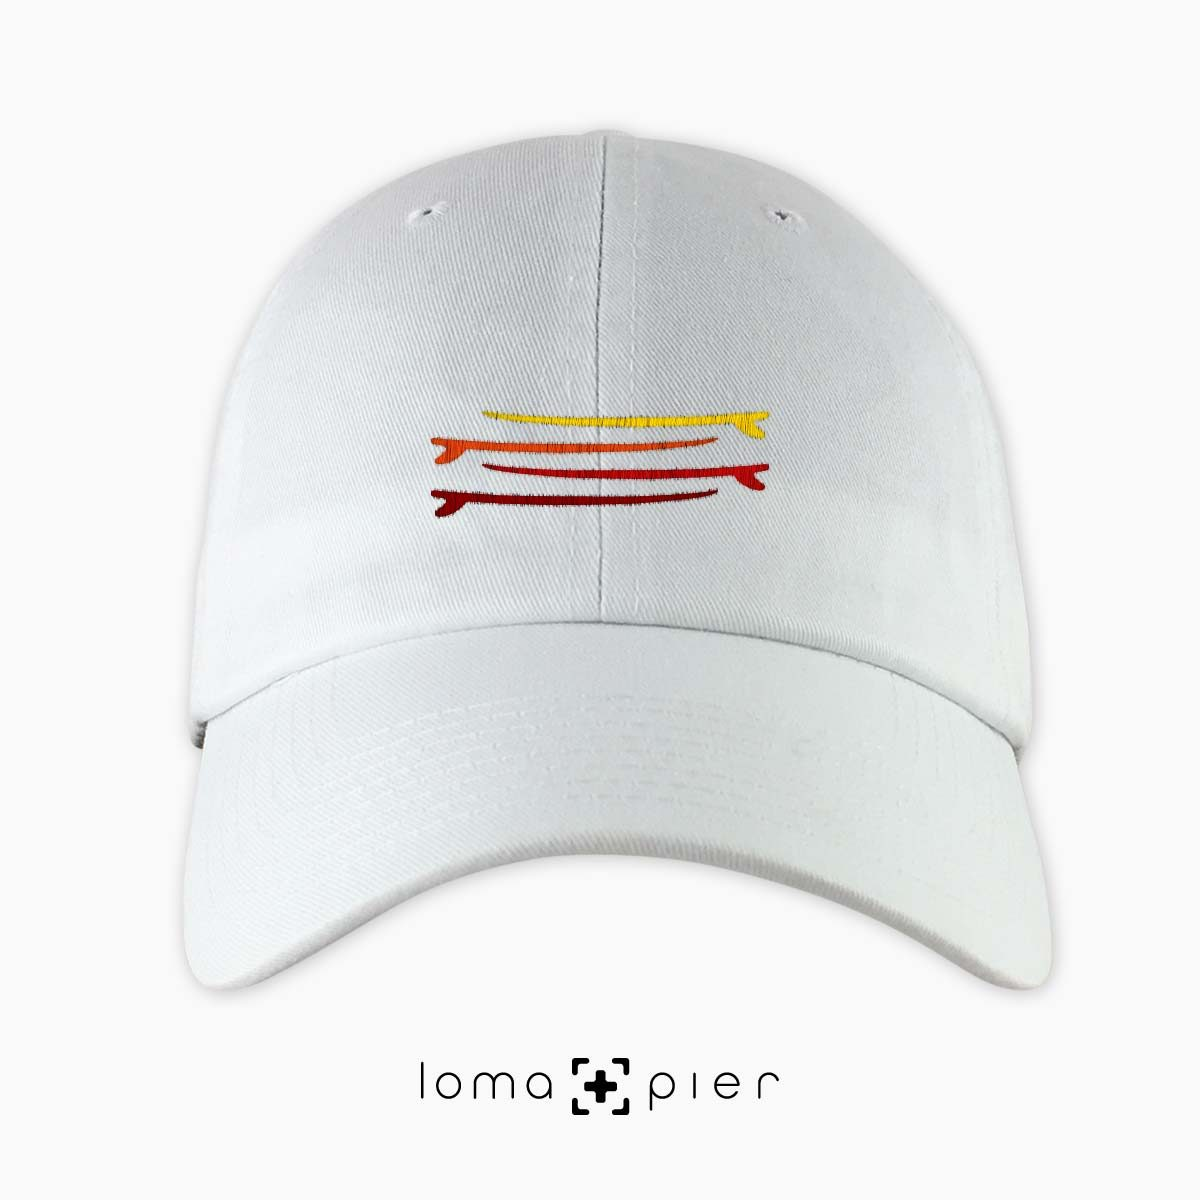 SURFBOARDS STACKED icon embroidered on a white dad hat by loma+pier hat store made in the USA